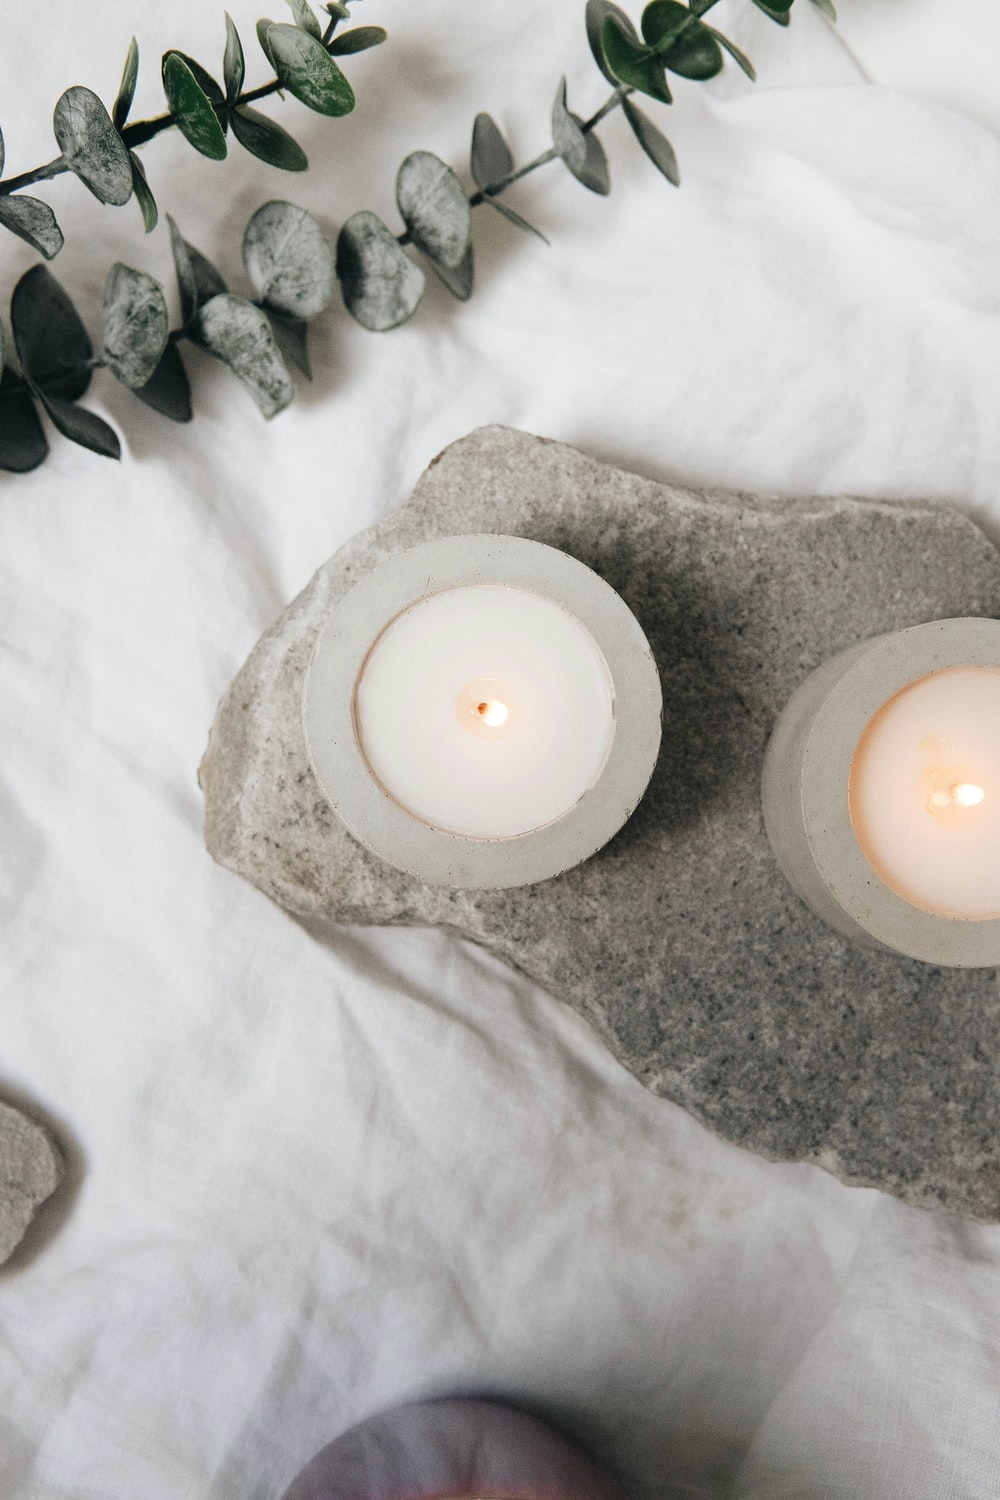 white candle on white ceramic saucer